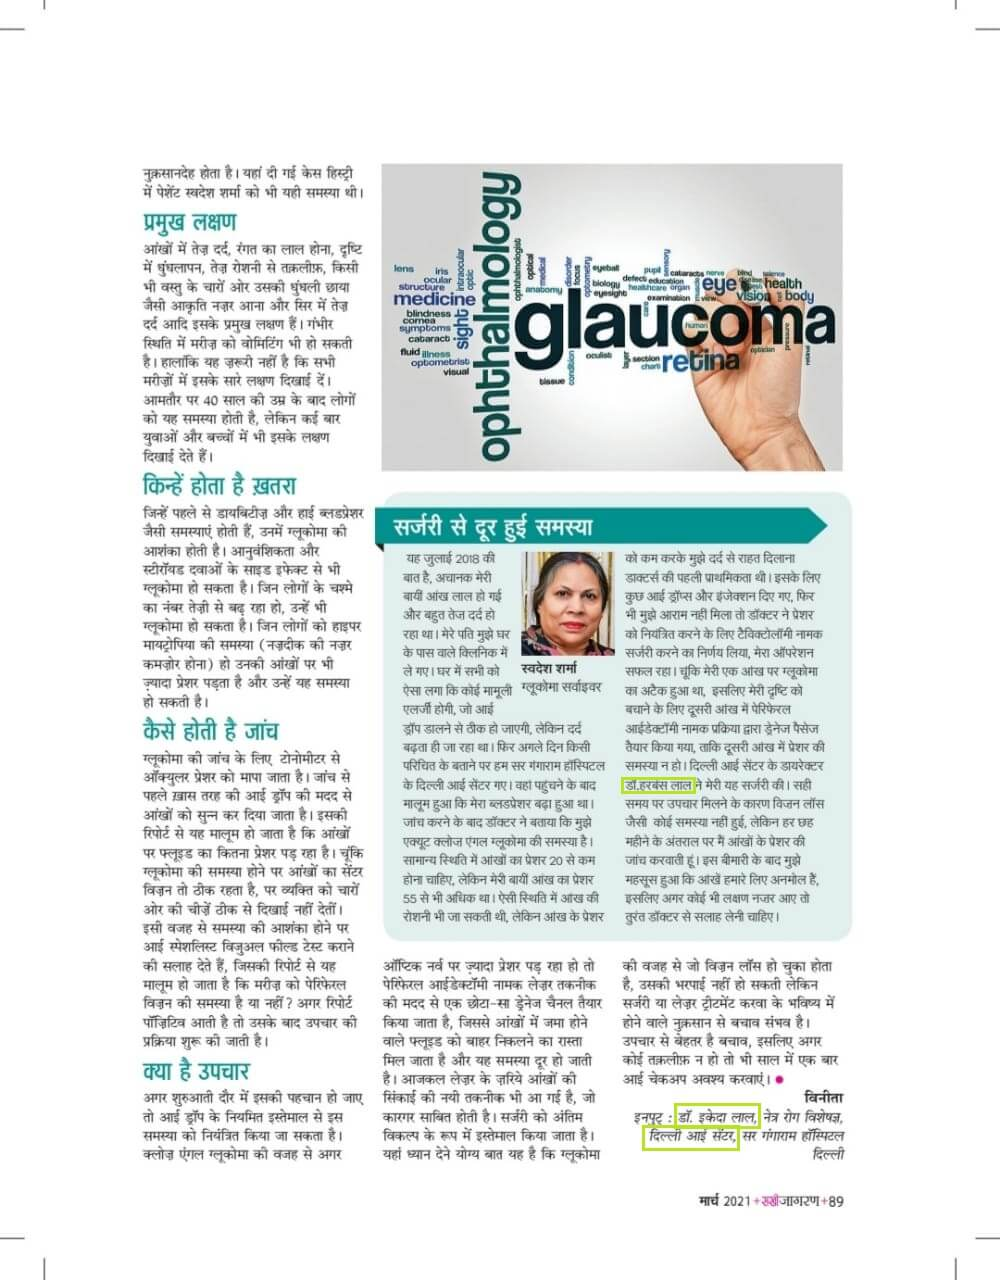 Glaucoma surgery at Delhi Eye Centre, patient review covered by Dainik Jagran